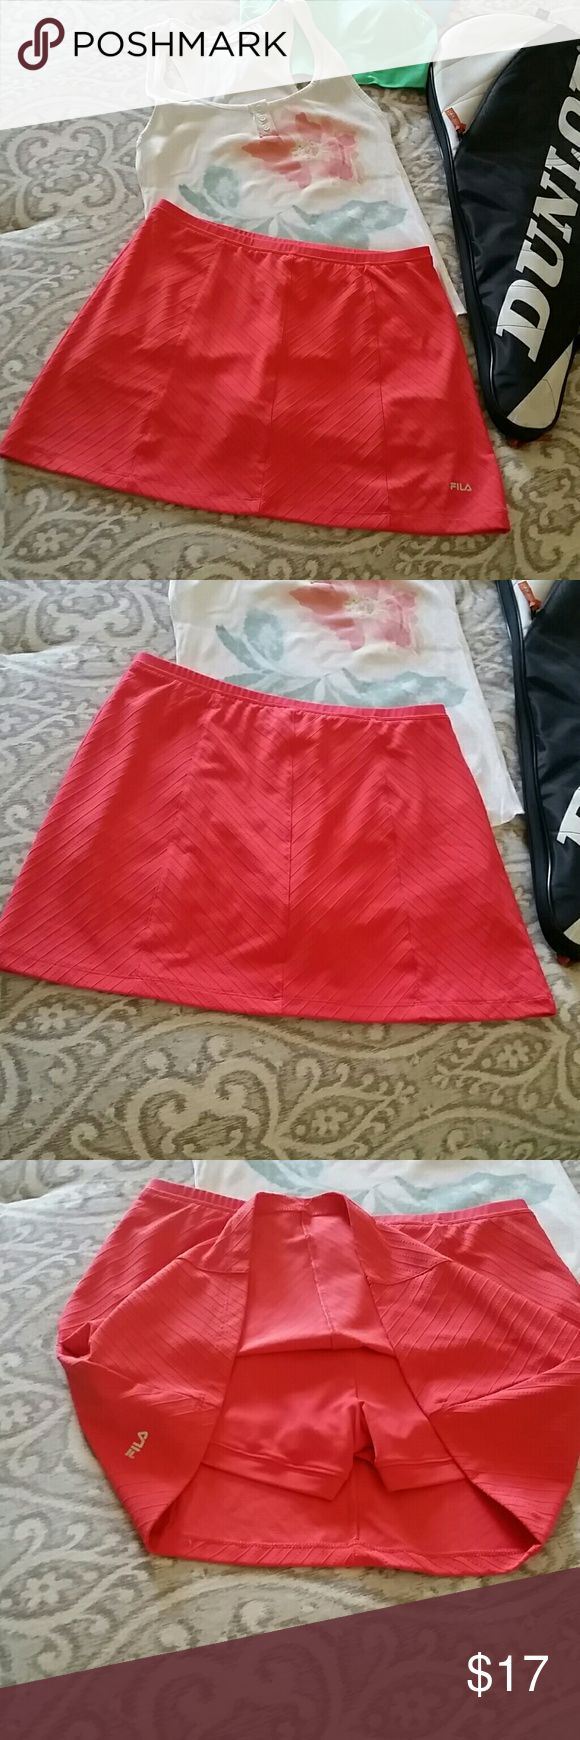 Fila Skort Perfect used condition. Color looks brighter on pics, it's not neon, more of a beautiful salmon (orange with pink) color. Great for tennis, pickle ball,  jogging, or anything you do and want to be super comfortable and cute. Fila Shorts Skorts